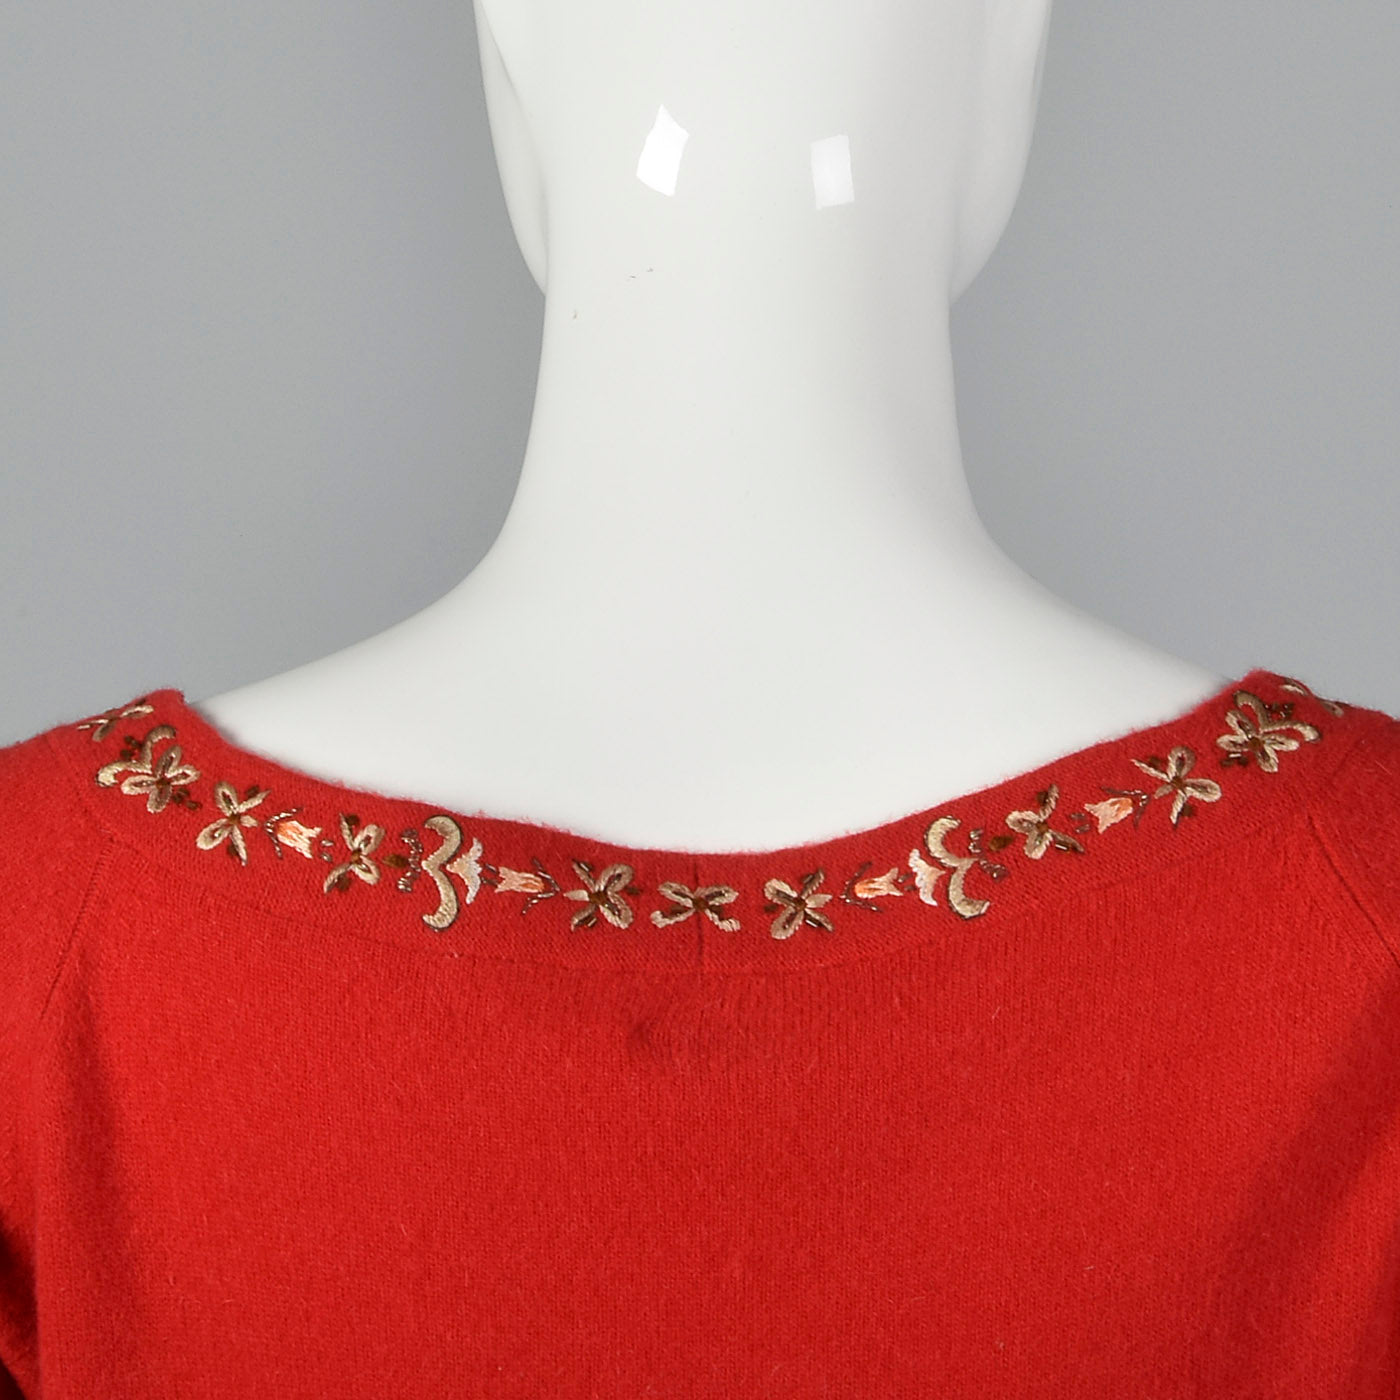 1950s Red Sweater with Metal Thread Trim